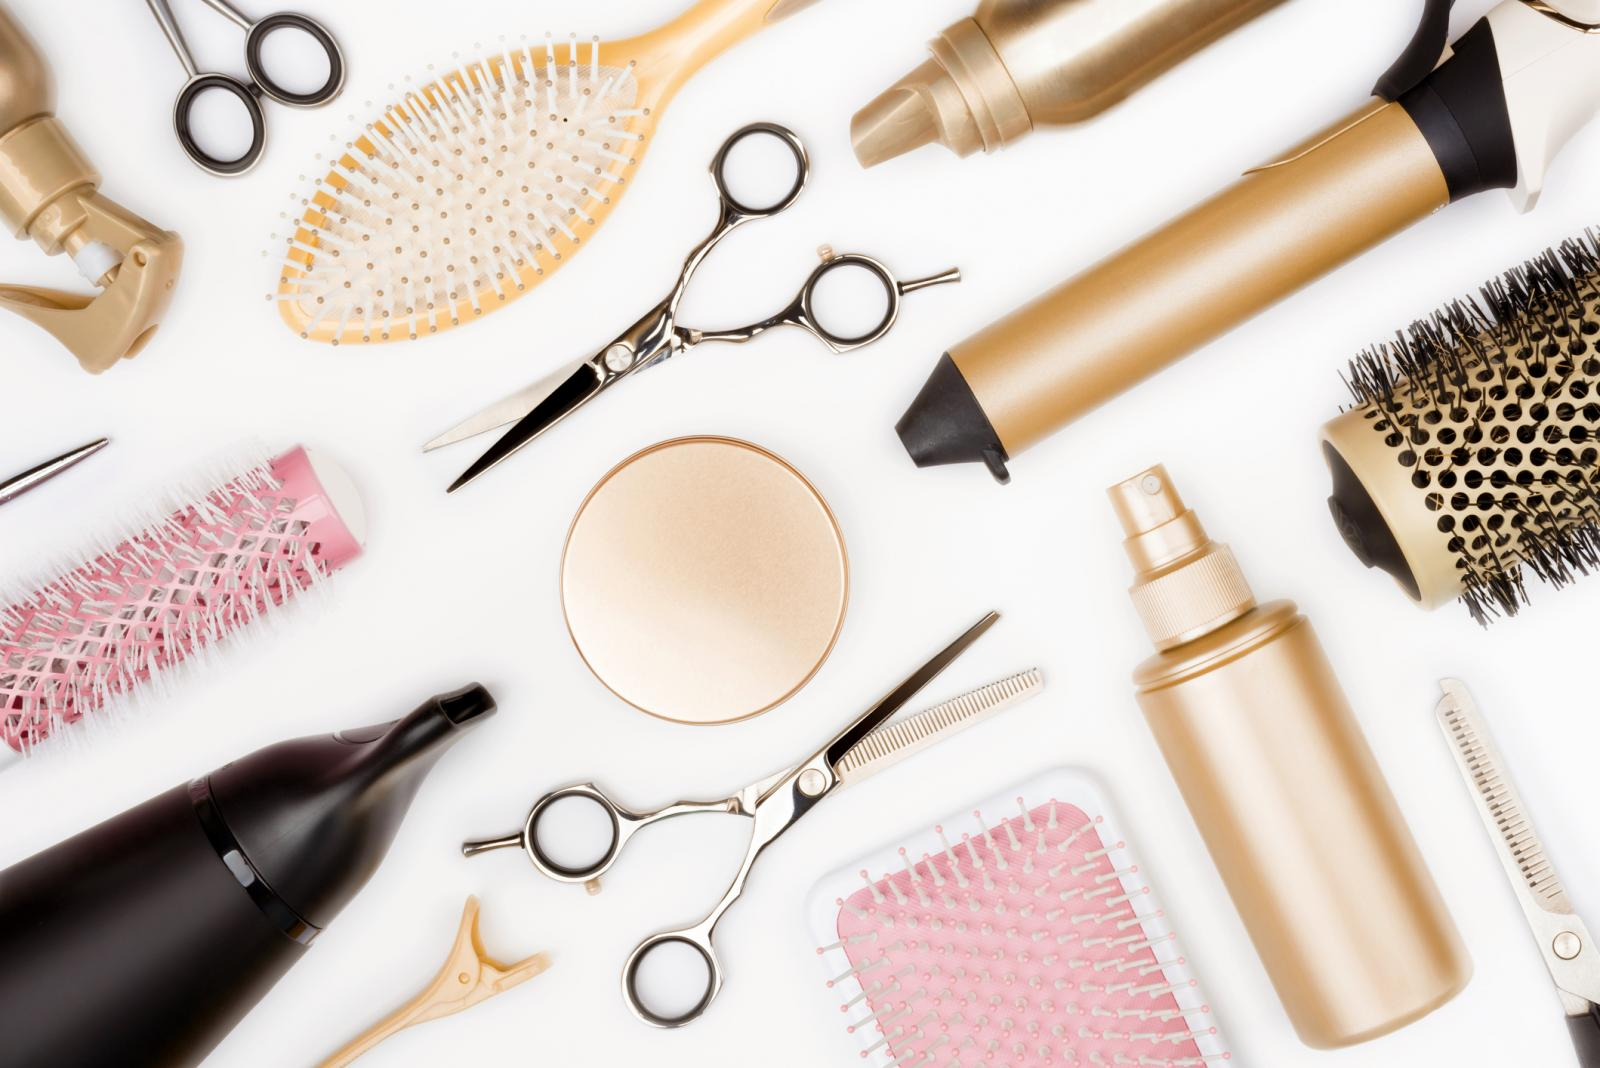 Hair Styling Equipment | LoveToKnow